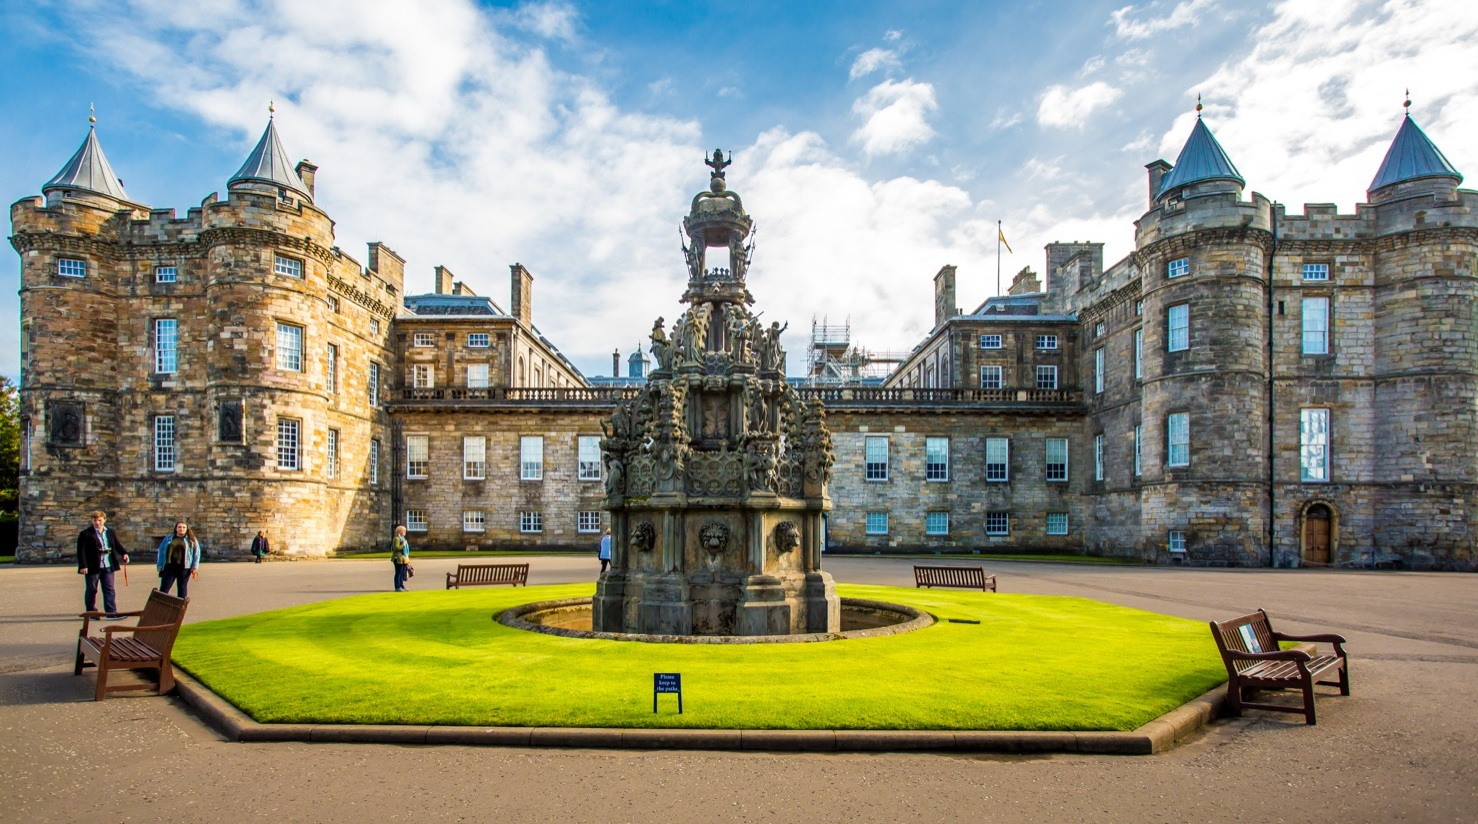 9-+The+Cheshire+Magazine+Edinburgh+Travel+City+Break+Palace+of+Holyroodhouse.jpg